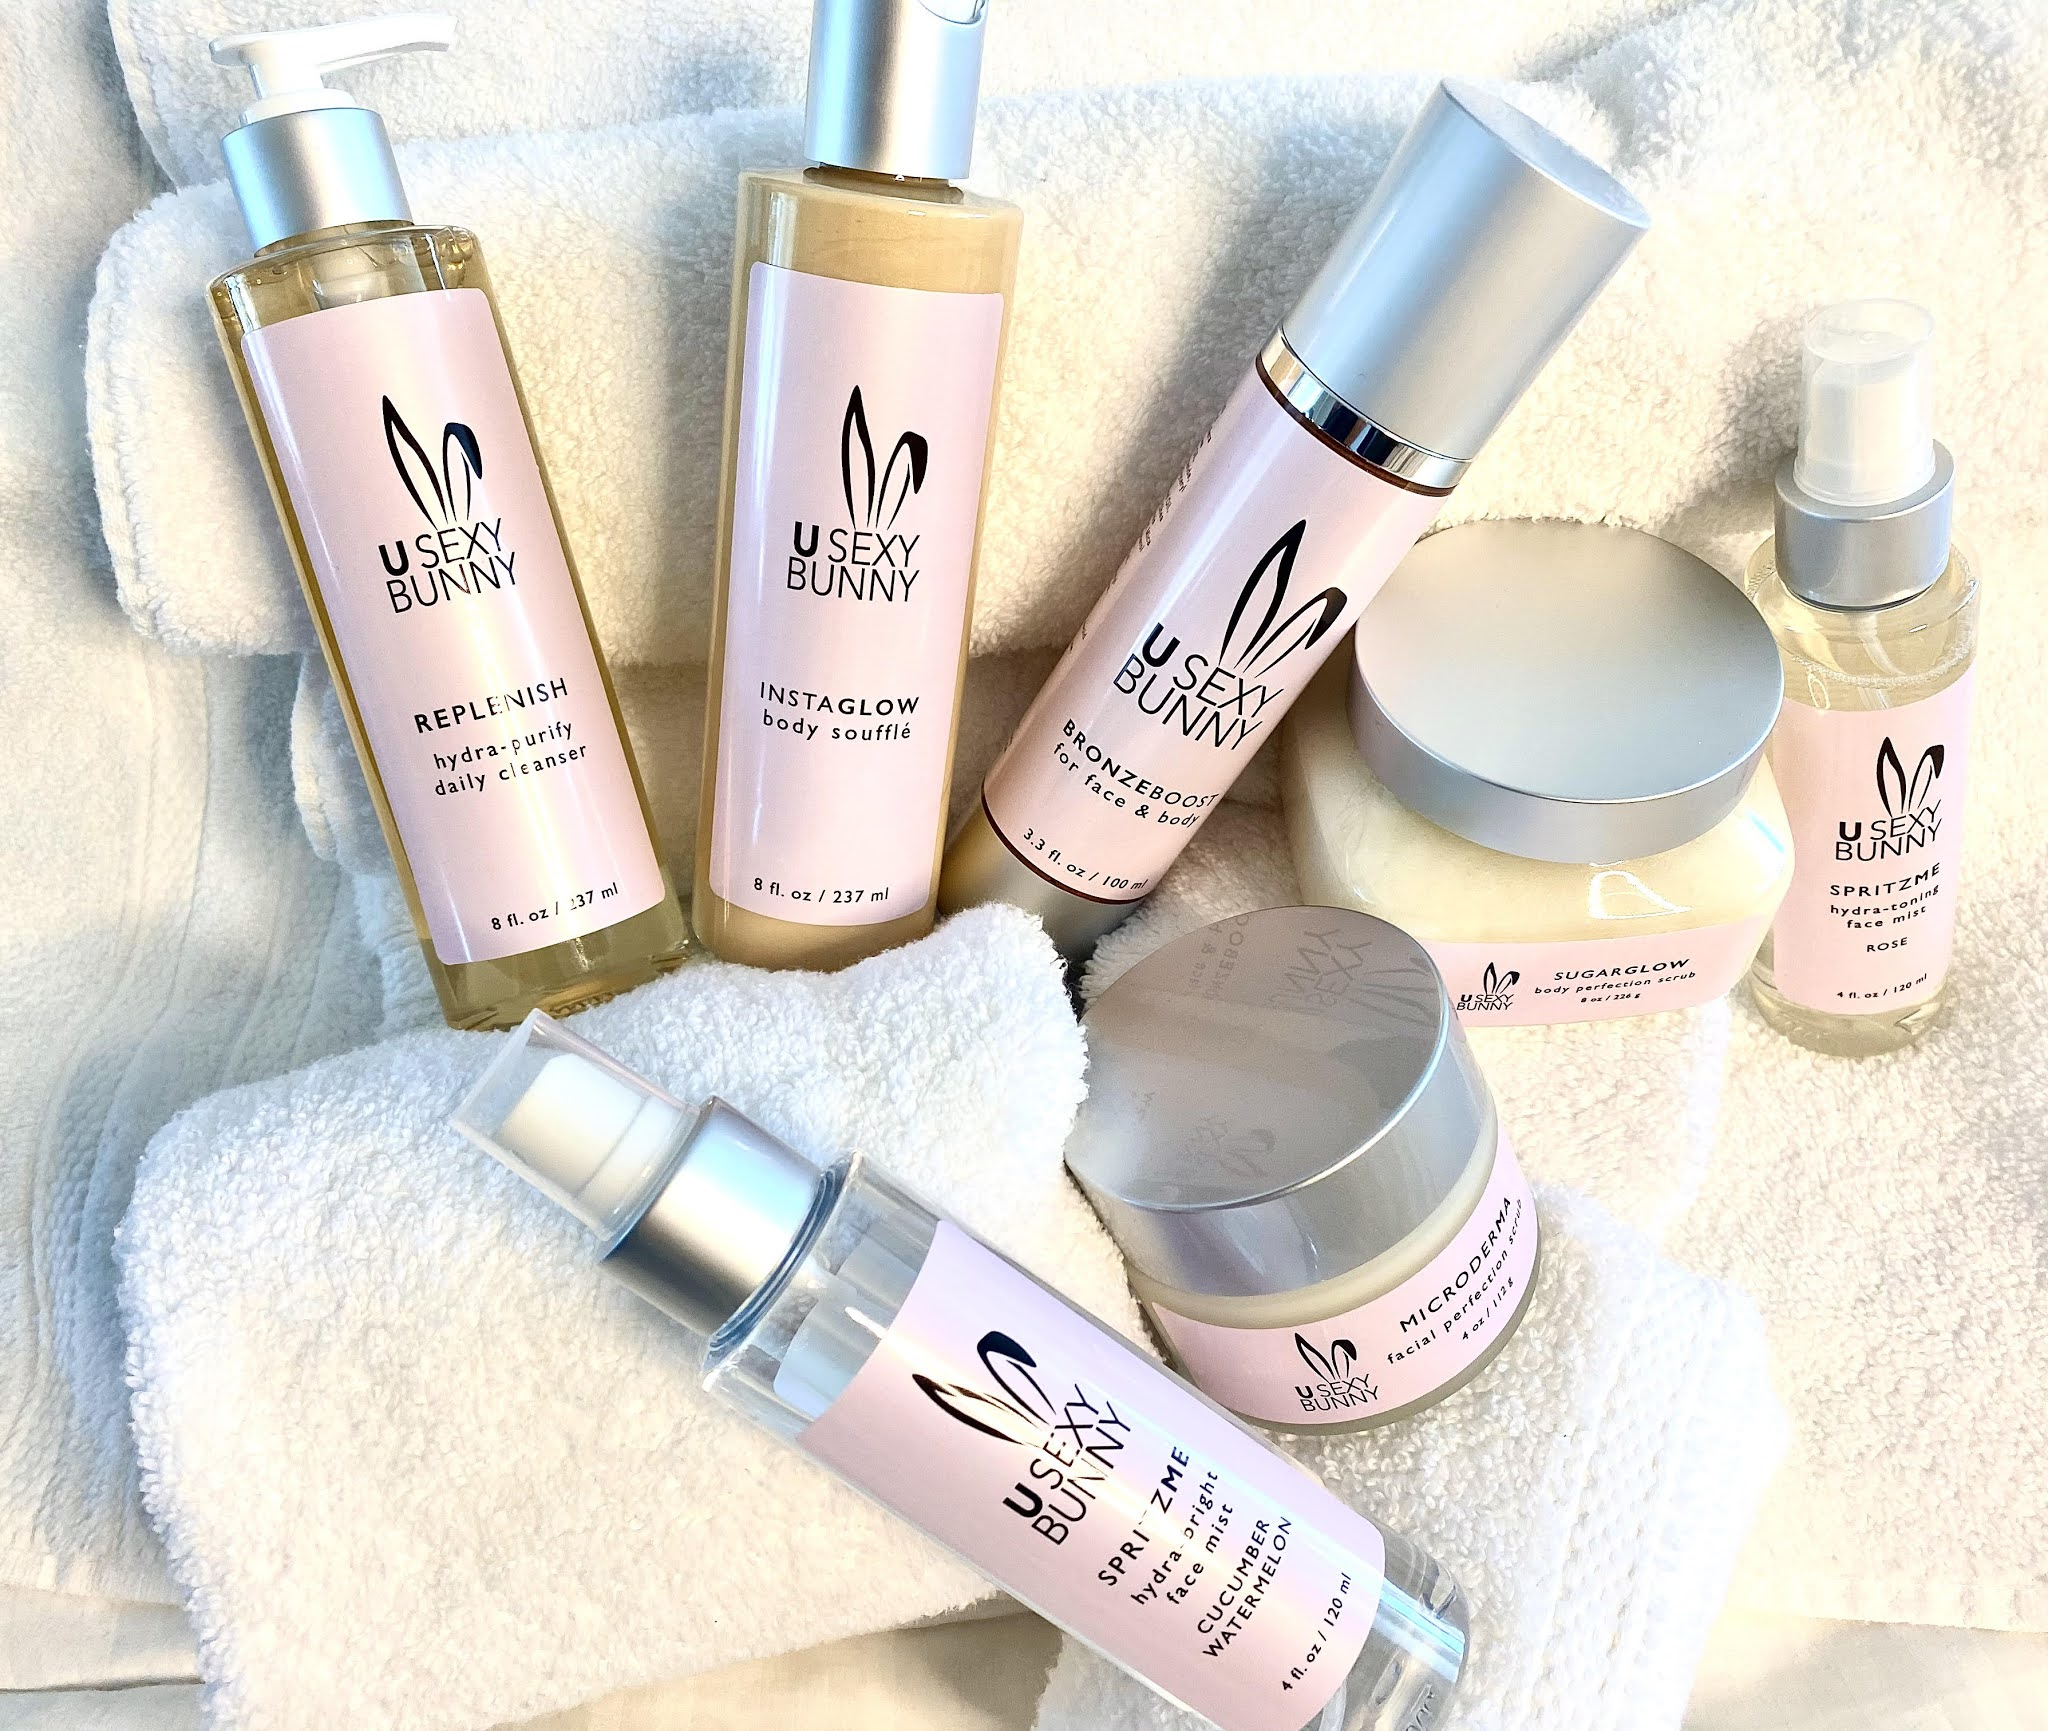 vegan cruelty free skincare products from small brands